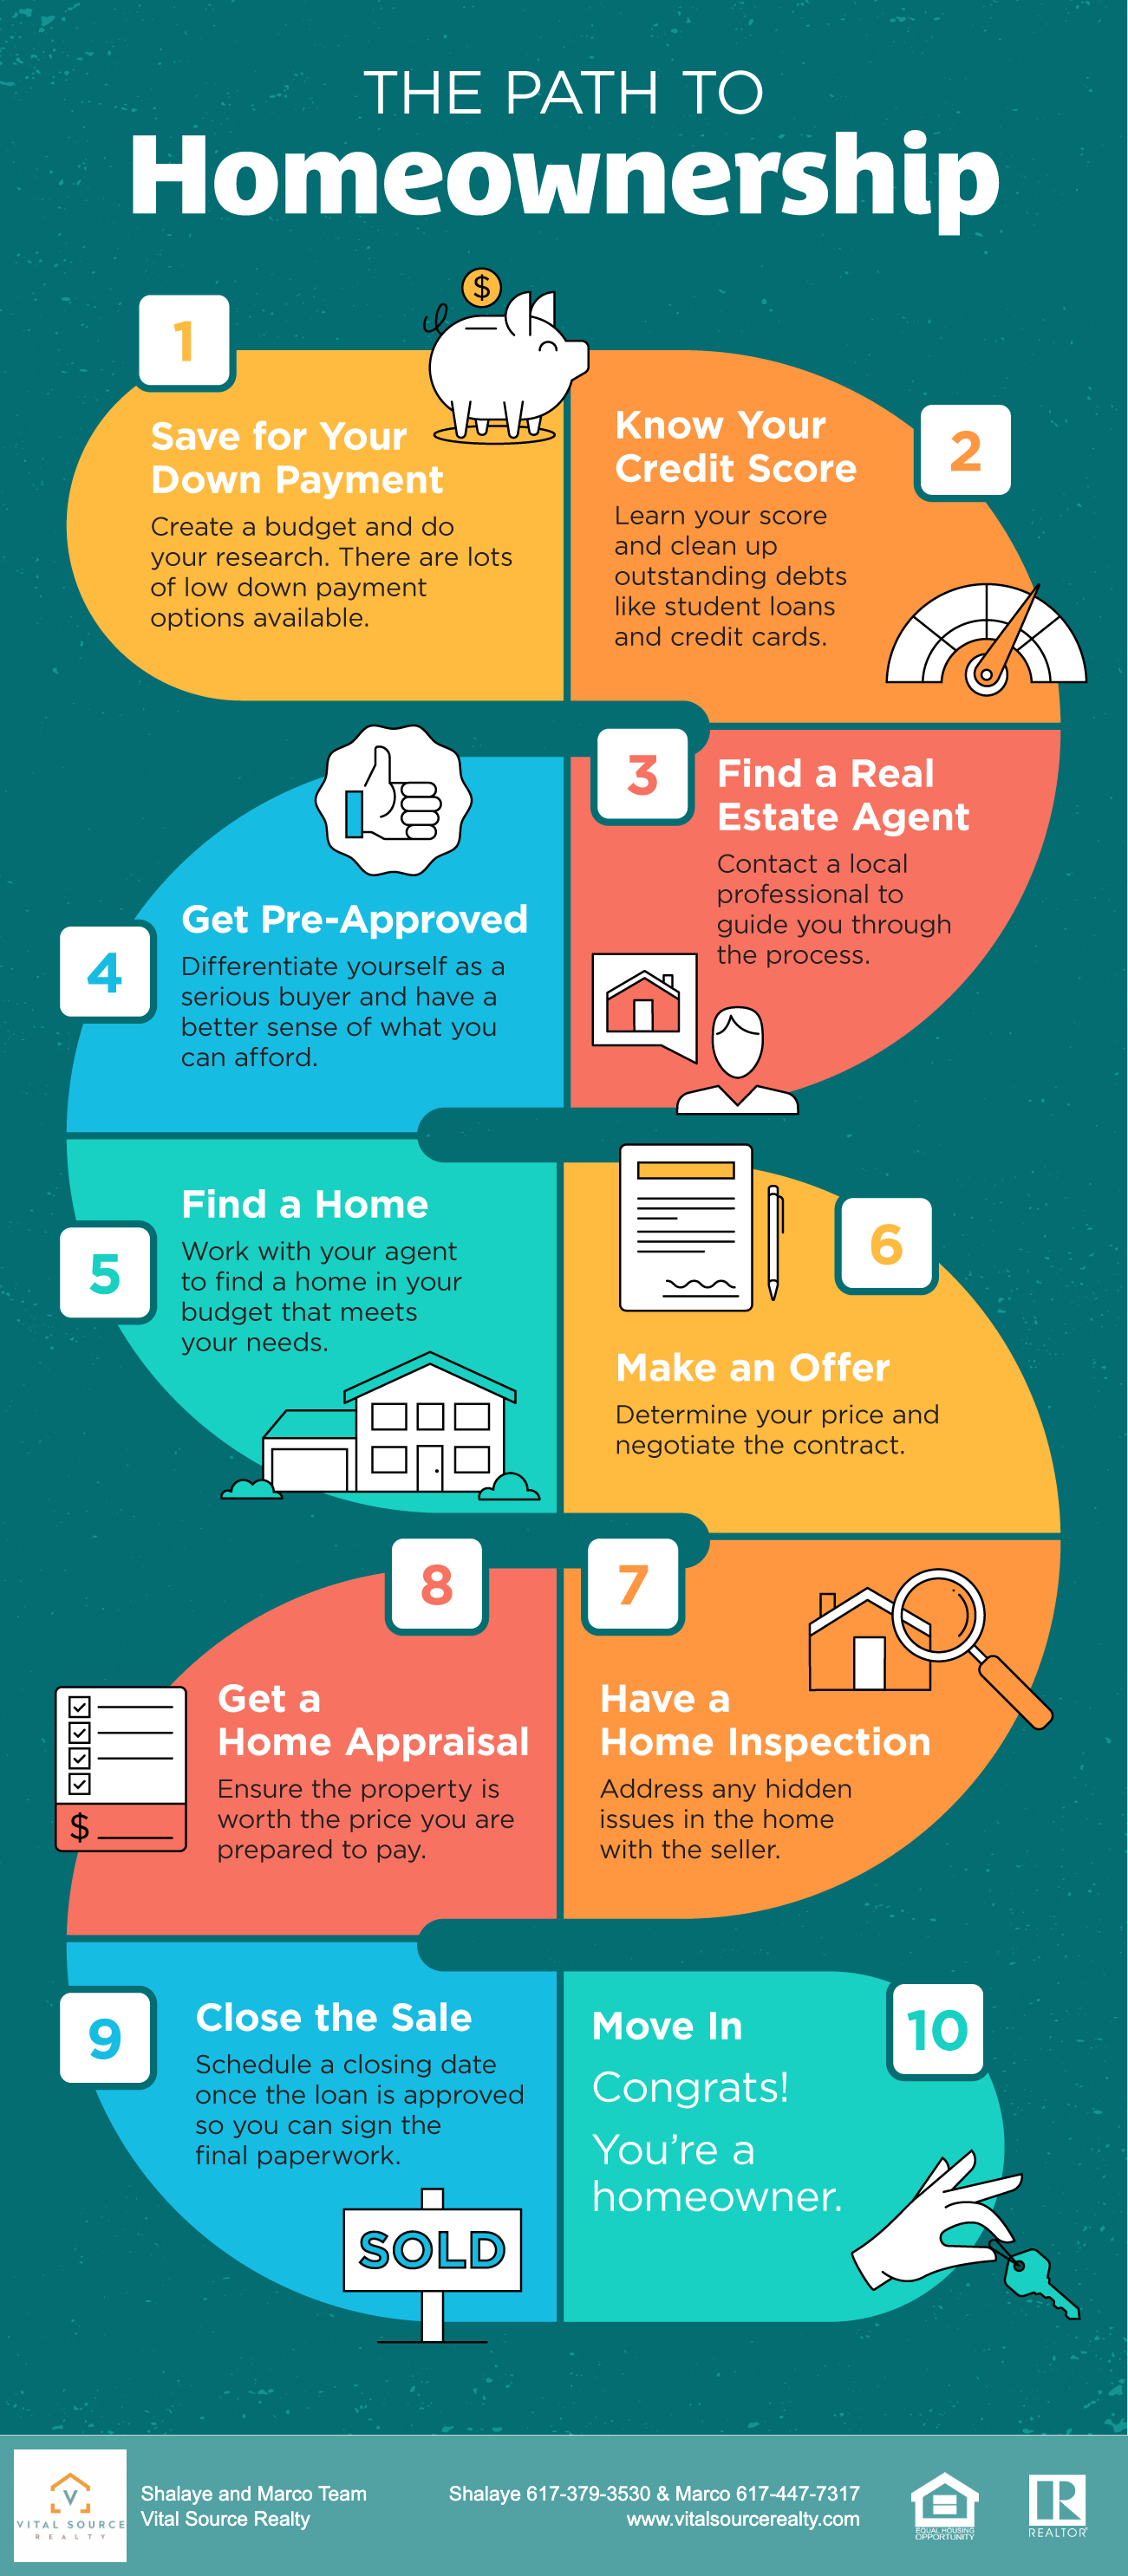 learn how to buy a home in 2021 - vital source realty - shalaye camillo - 617 379 3530